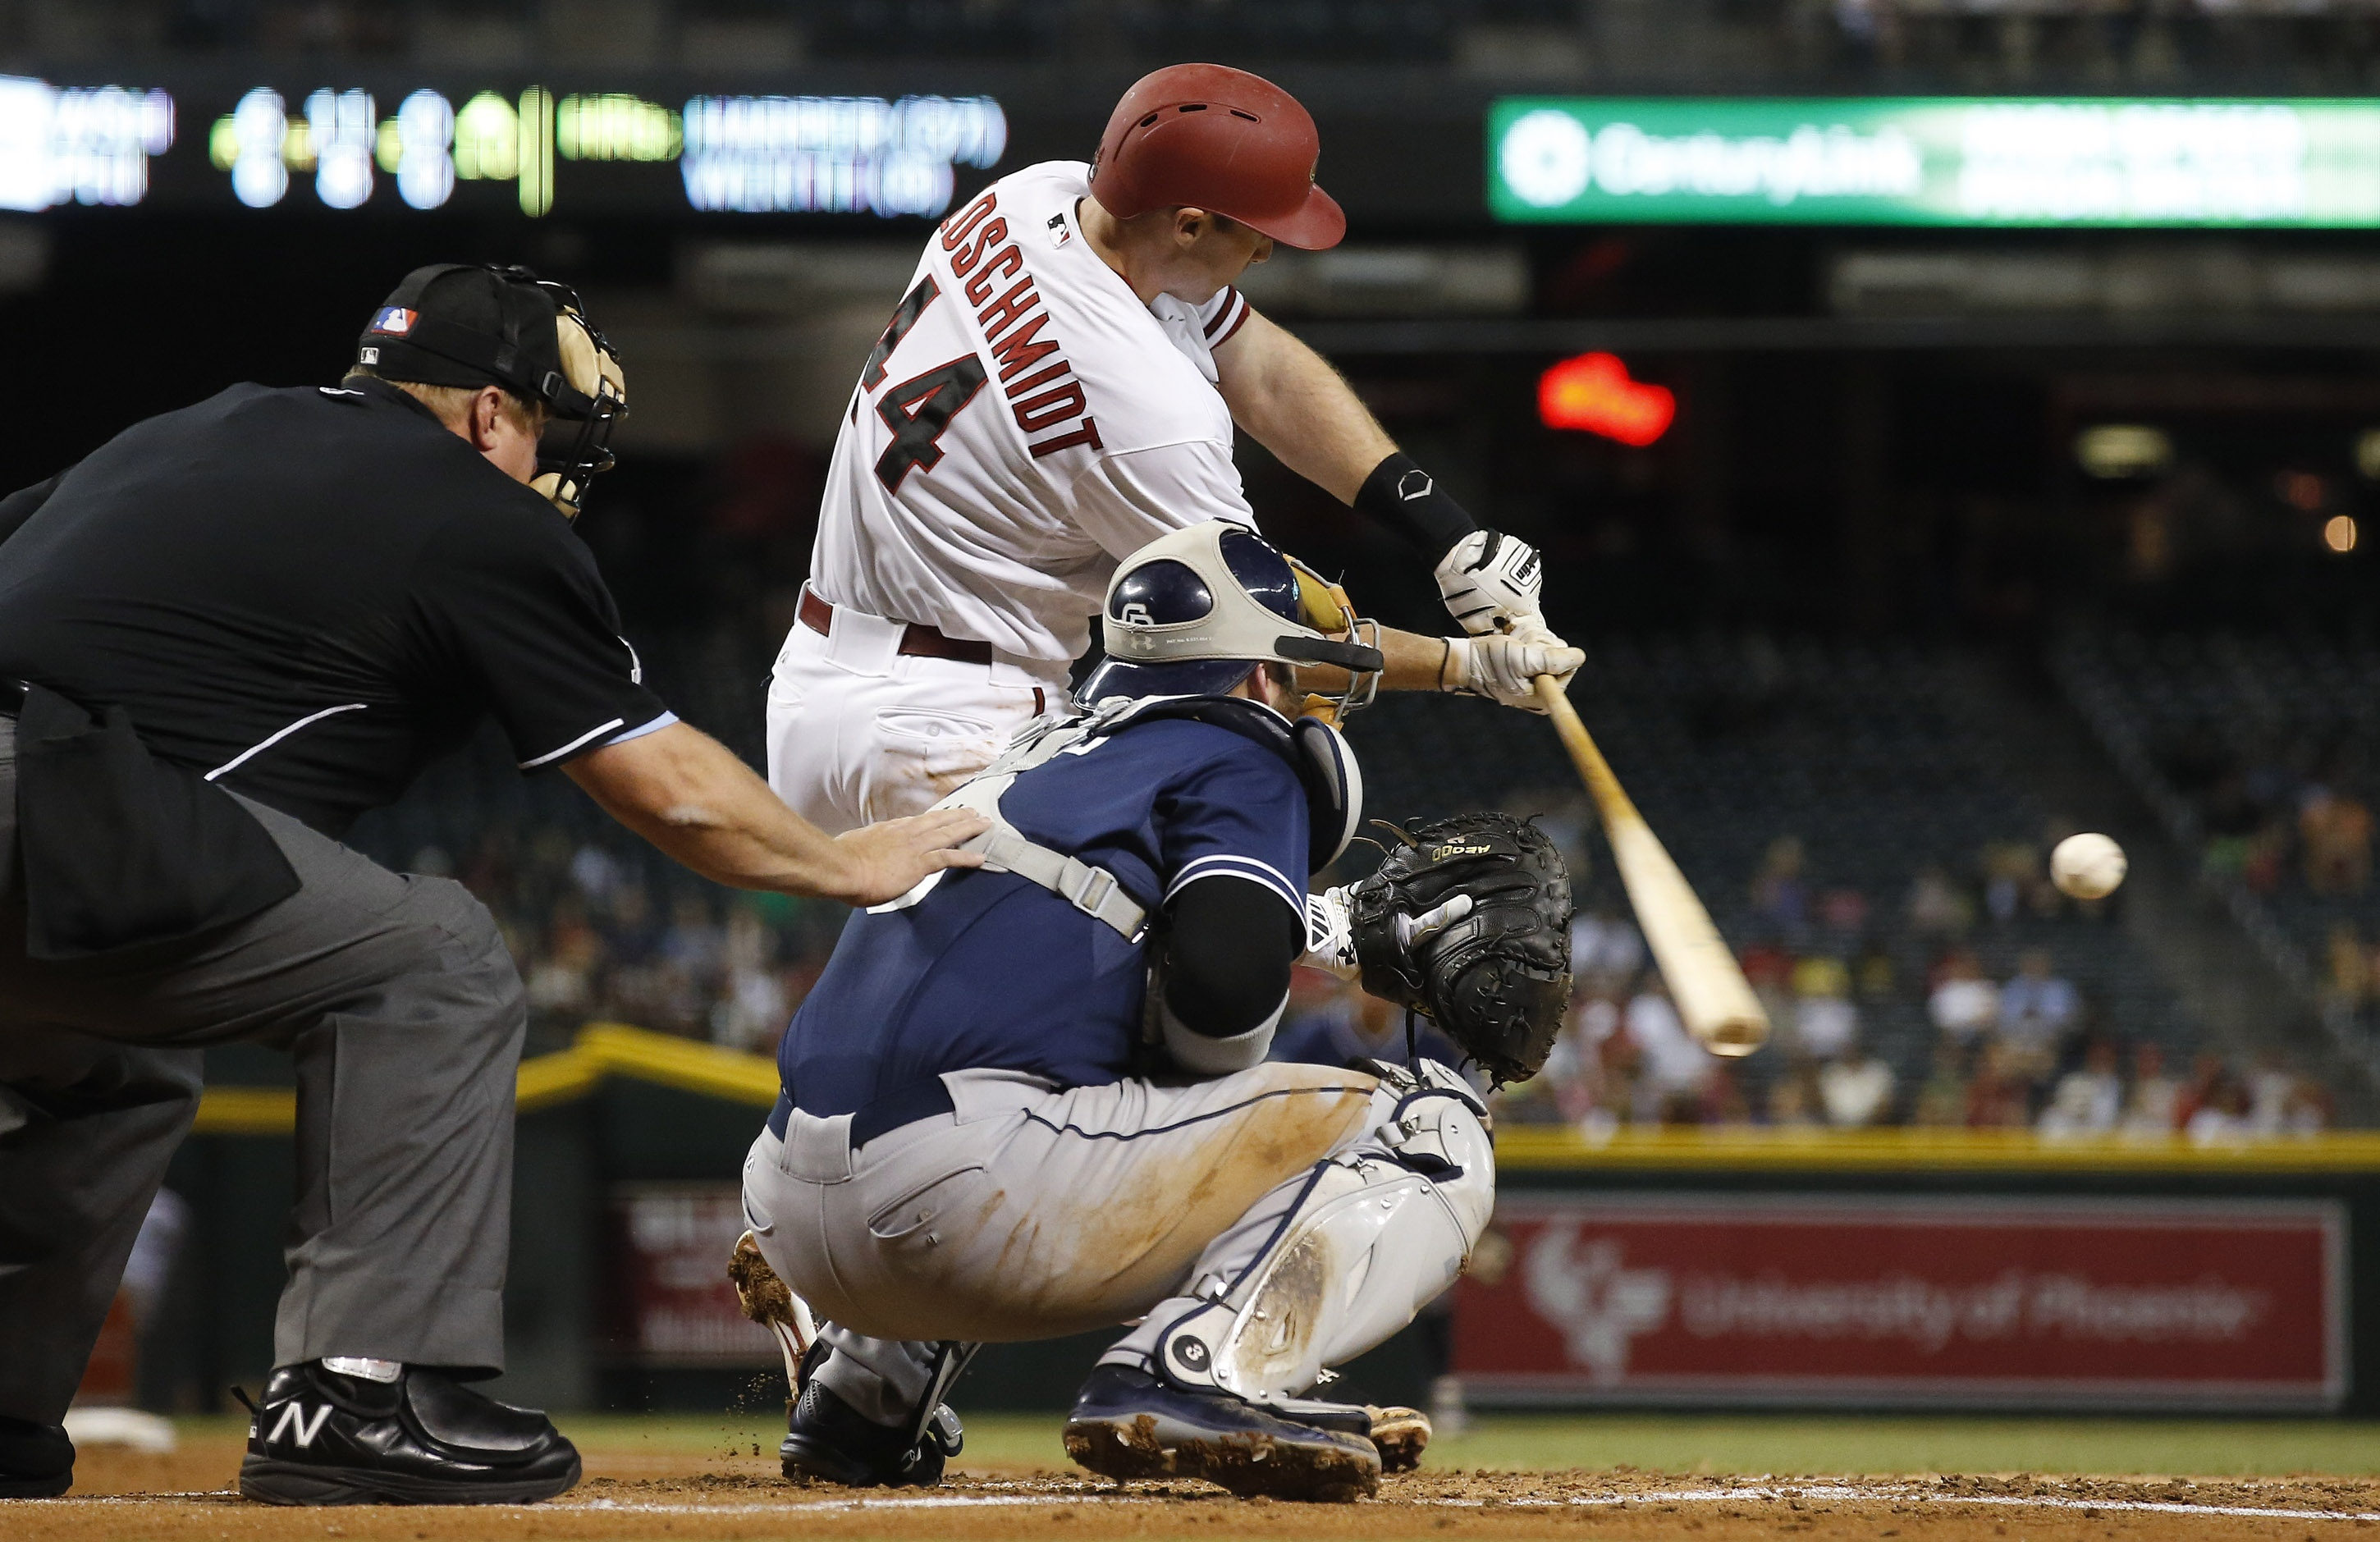 Arizona Diamondbacks' Paul Goldschmidt (44) connects for a run-scoring double as San Diego Padres catcher Derek Norris and umpire Bruce Dreckman, left, watches during the first inning of a baseball game Monday, Sept. 14, 2015, in Phoenix. (AP Photo/Ross D